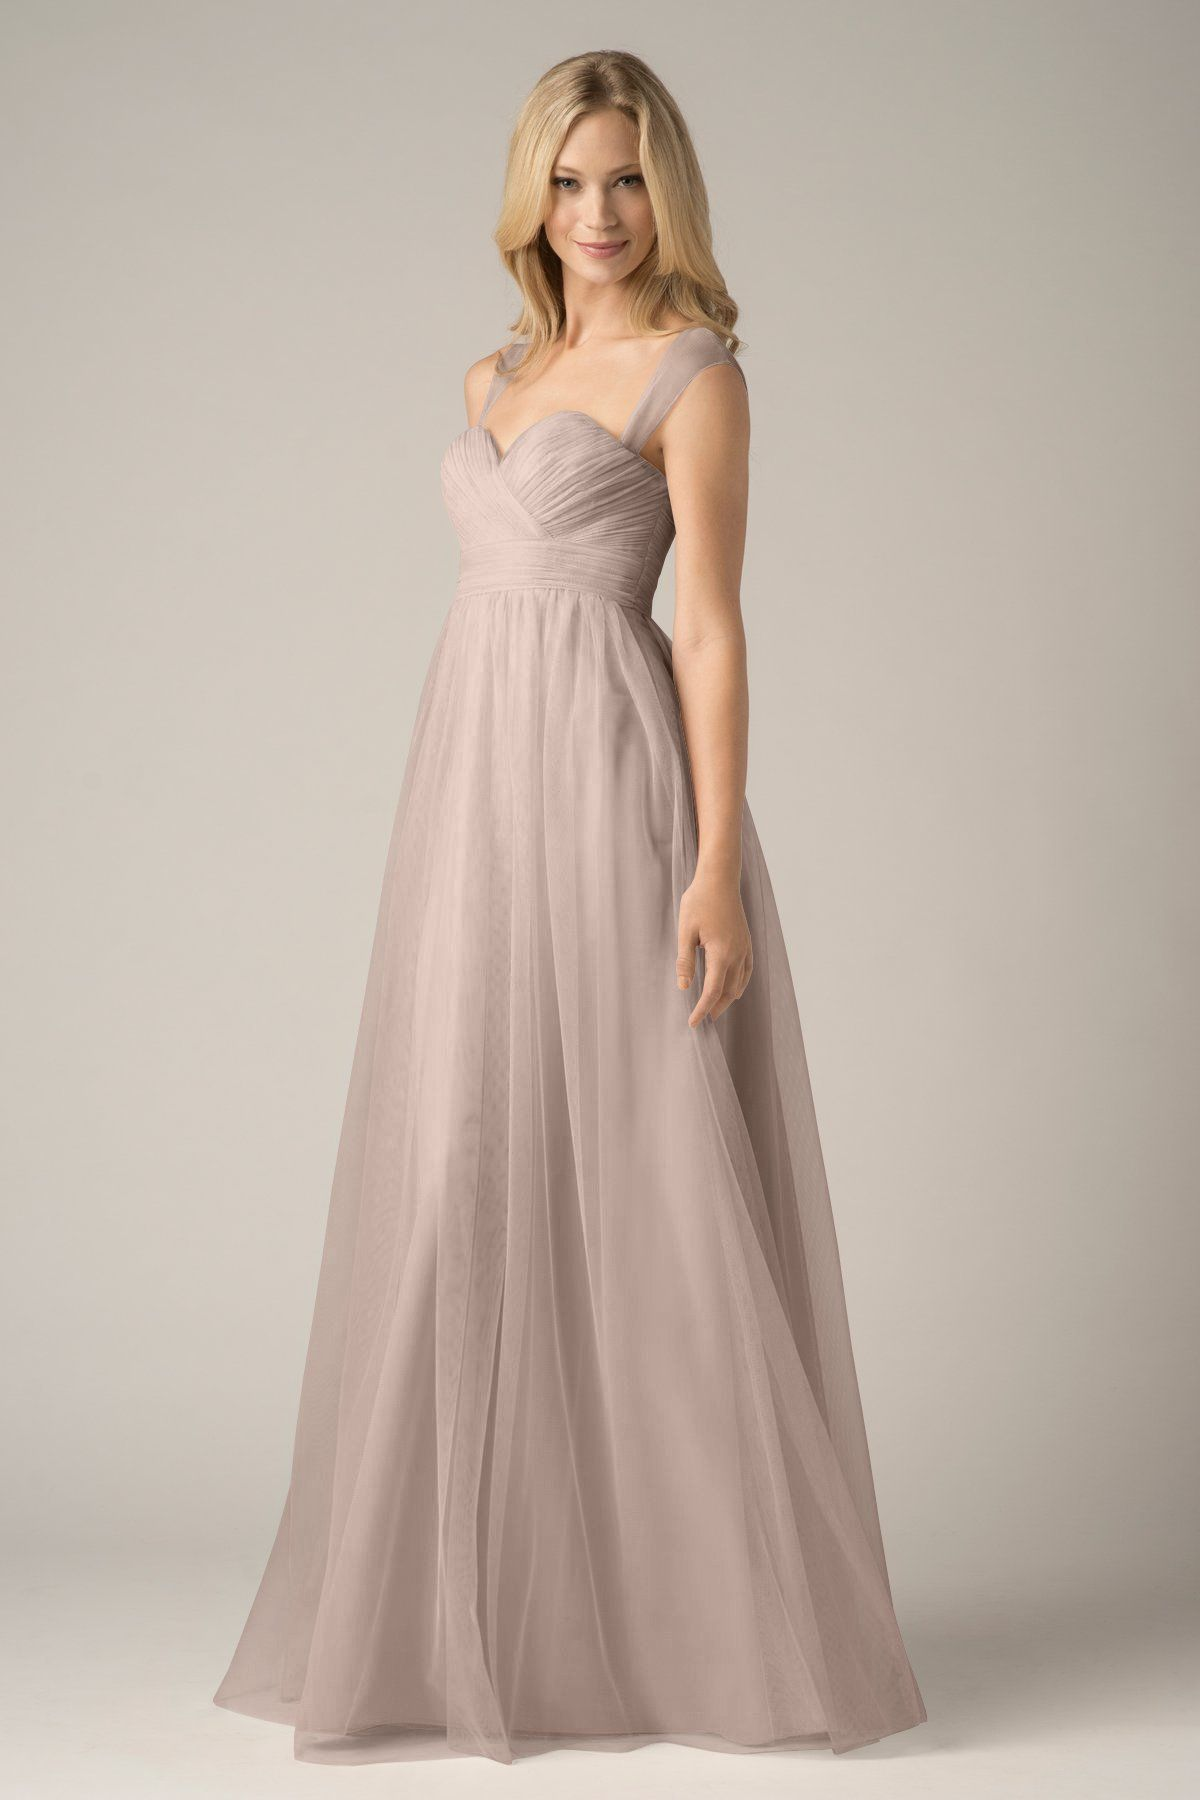 My bridesmaids dresses except they are strapless same color as my bridesmaids dresses except they are strapless same color as the skirt of the ombrellifo Image collections